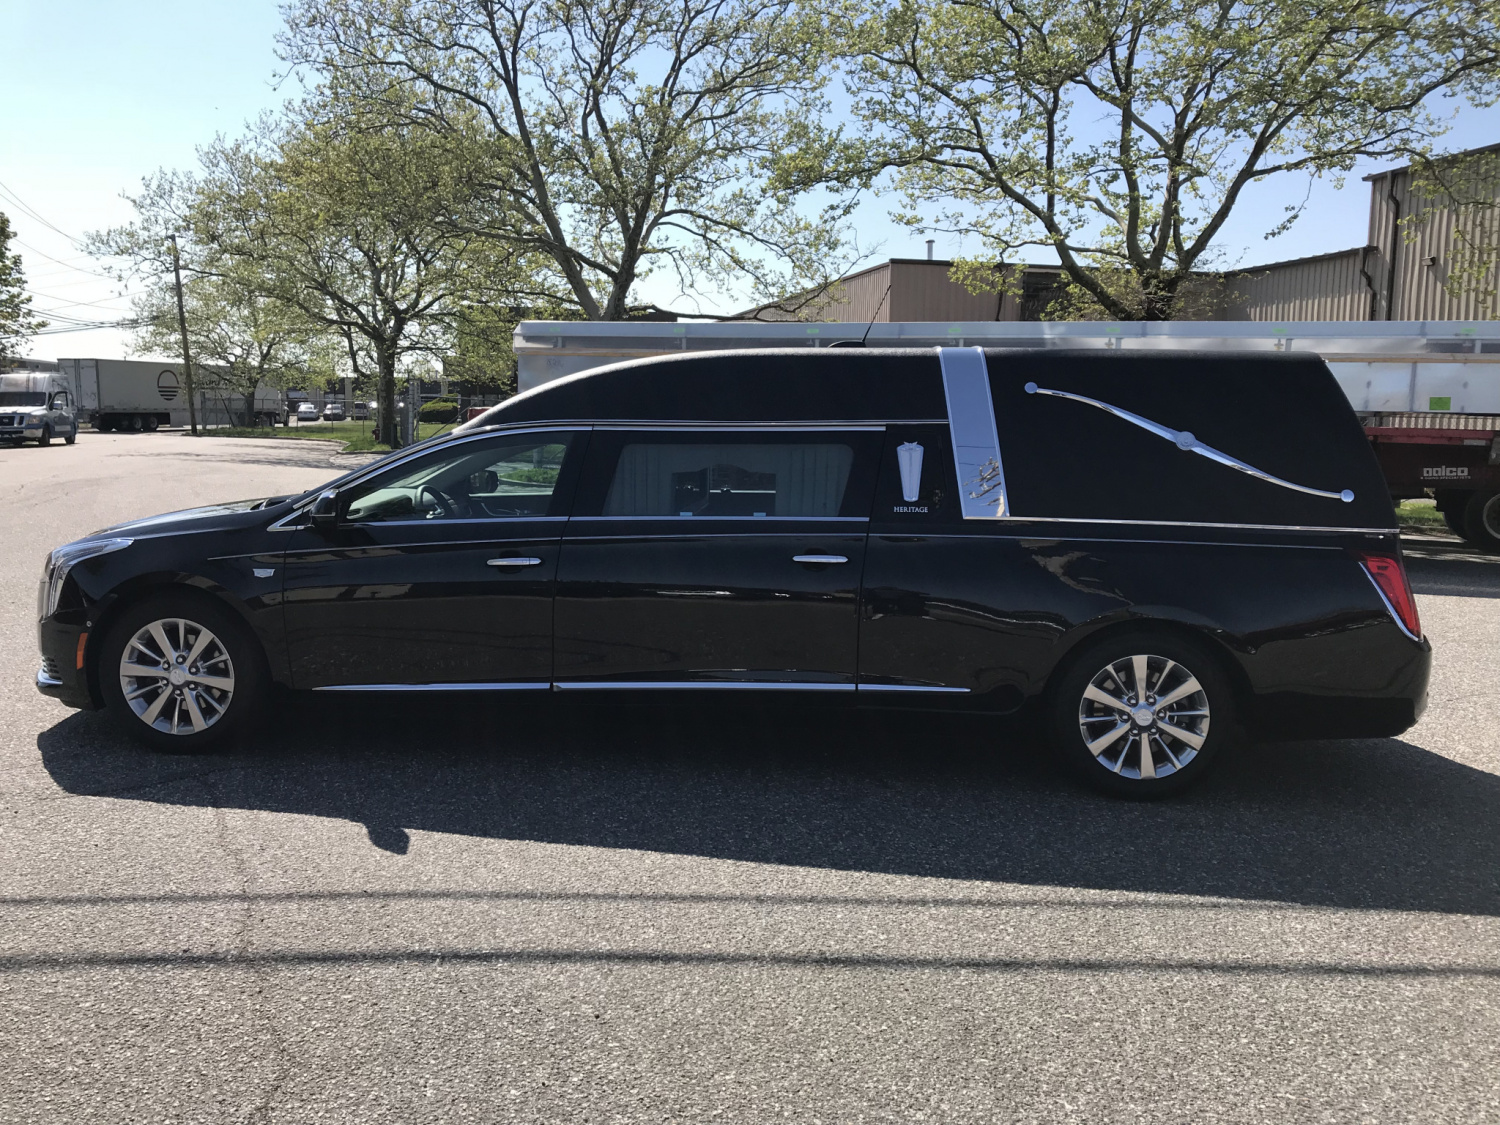 2019 Cadillac Federal Heritage Funeral Hearse Specialty